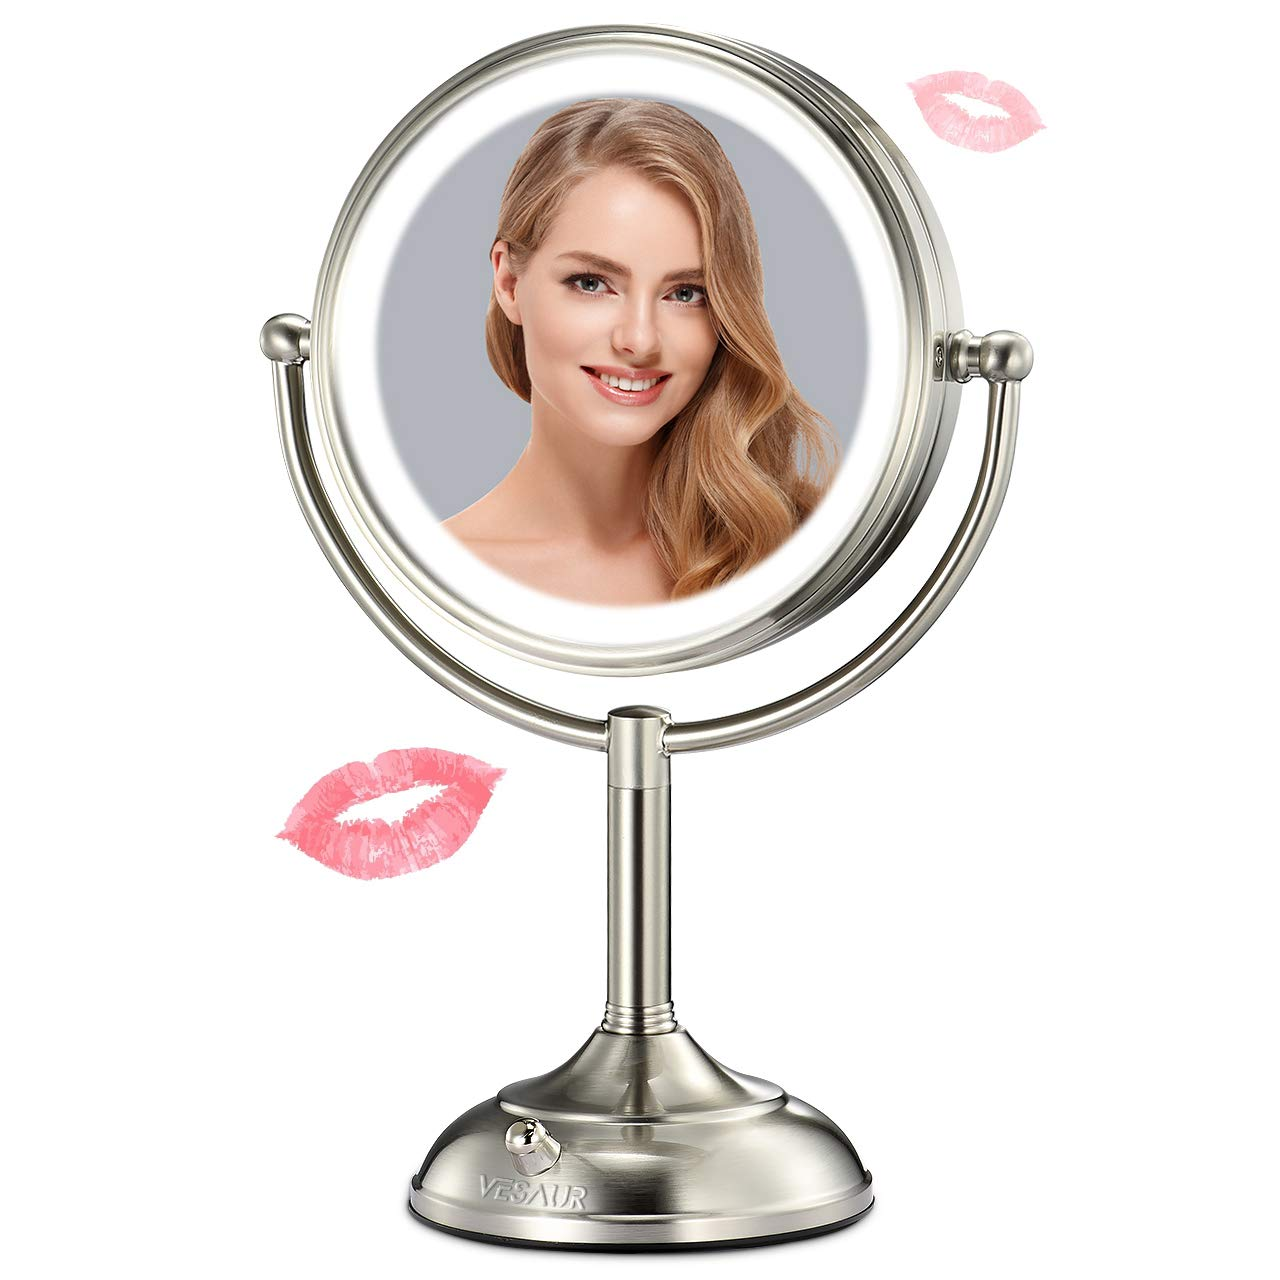 "VESAUR Professional 7.5"" Lighted Makeup Mirror, 10X Magnifying Vanity Mirror with 28 Medical LED Lights, Senior Pearl Nickel Cosmetic Mirror, Brightness Adjustable(0-1100Lux) Desk Lamp Alternative"